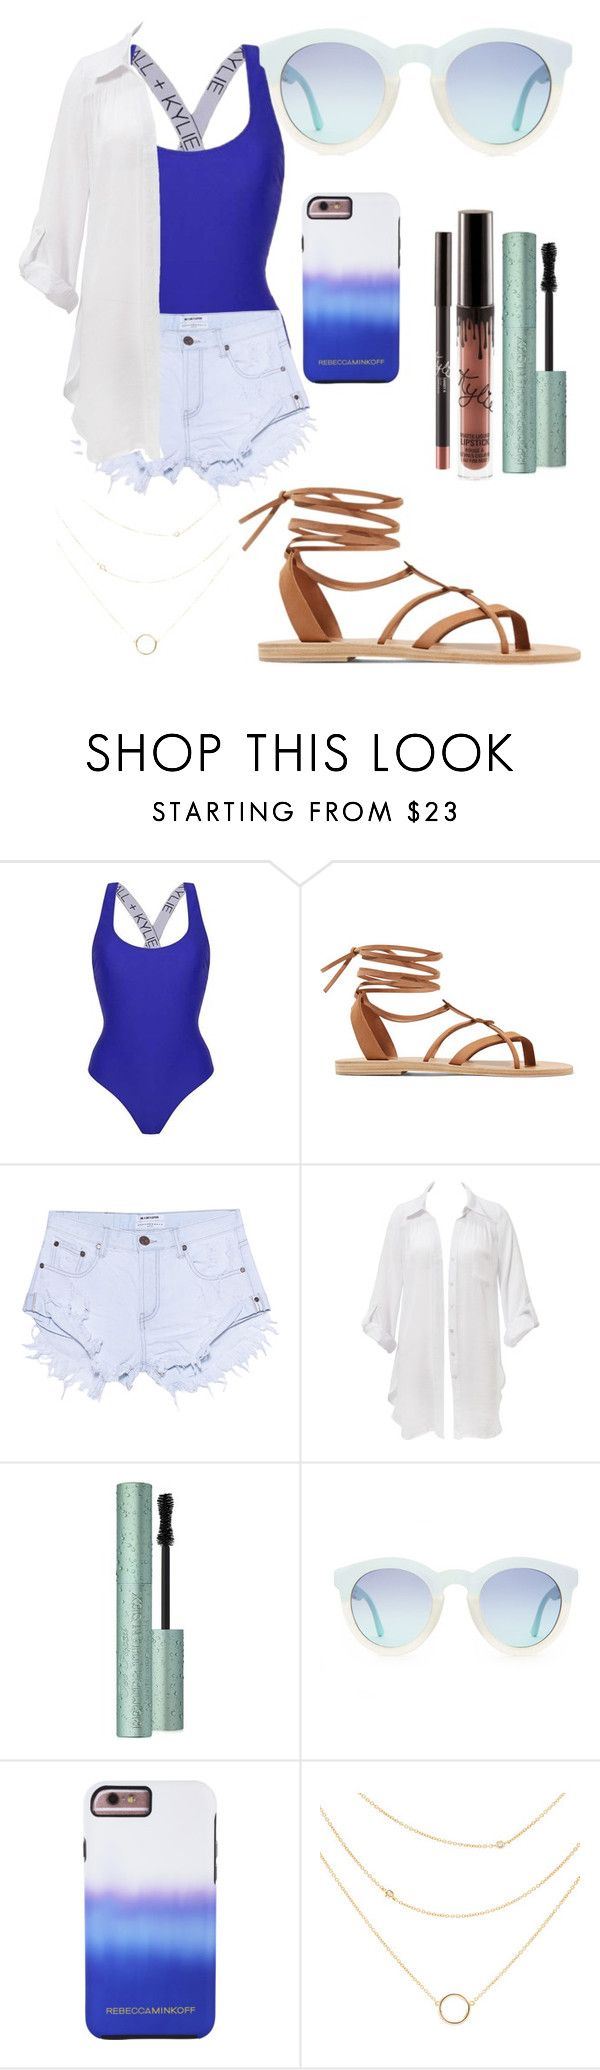 """kendall+kylie"" by tamanna56 ❤ liked on Polyvore featuring Topshop, Valia Gabriel, One Teaspoon, Beauty & The Beach, Too Faced Cosmetics, Rebecca Minkoff, GetTheLook and Swimsuits"